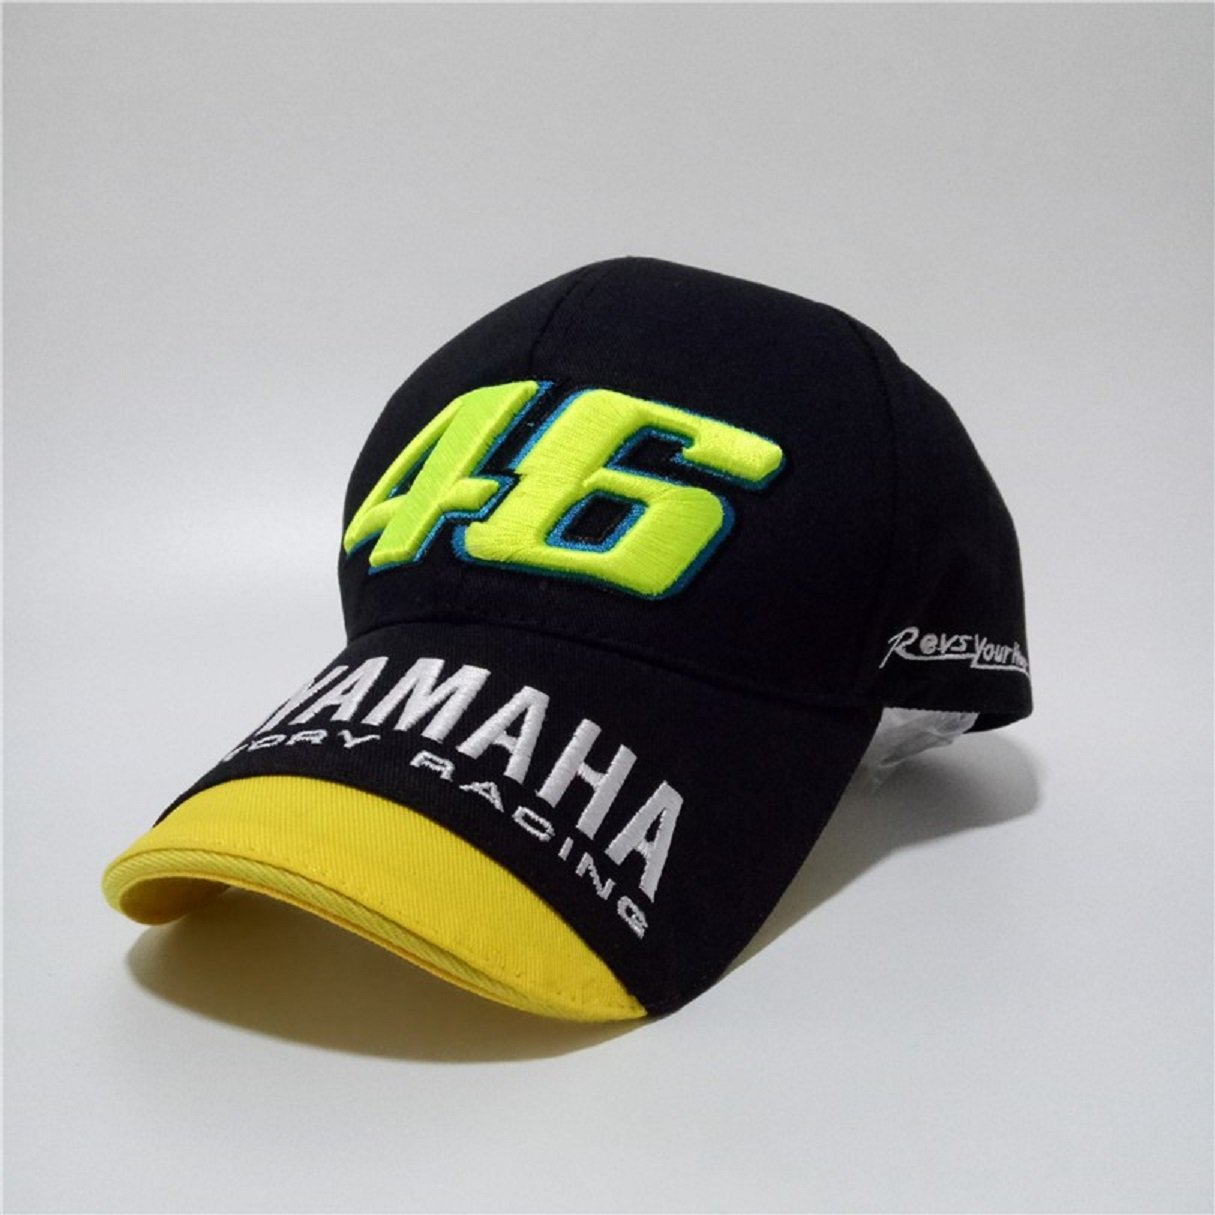 Official Valentino Rossi Cap Yamaha VR46 Factory Racing Moto GP Team 2018